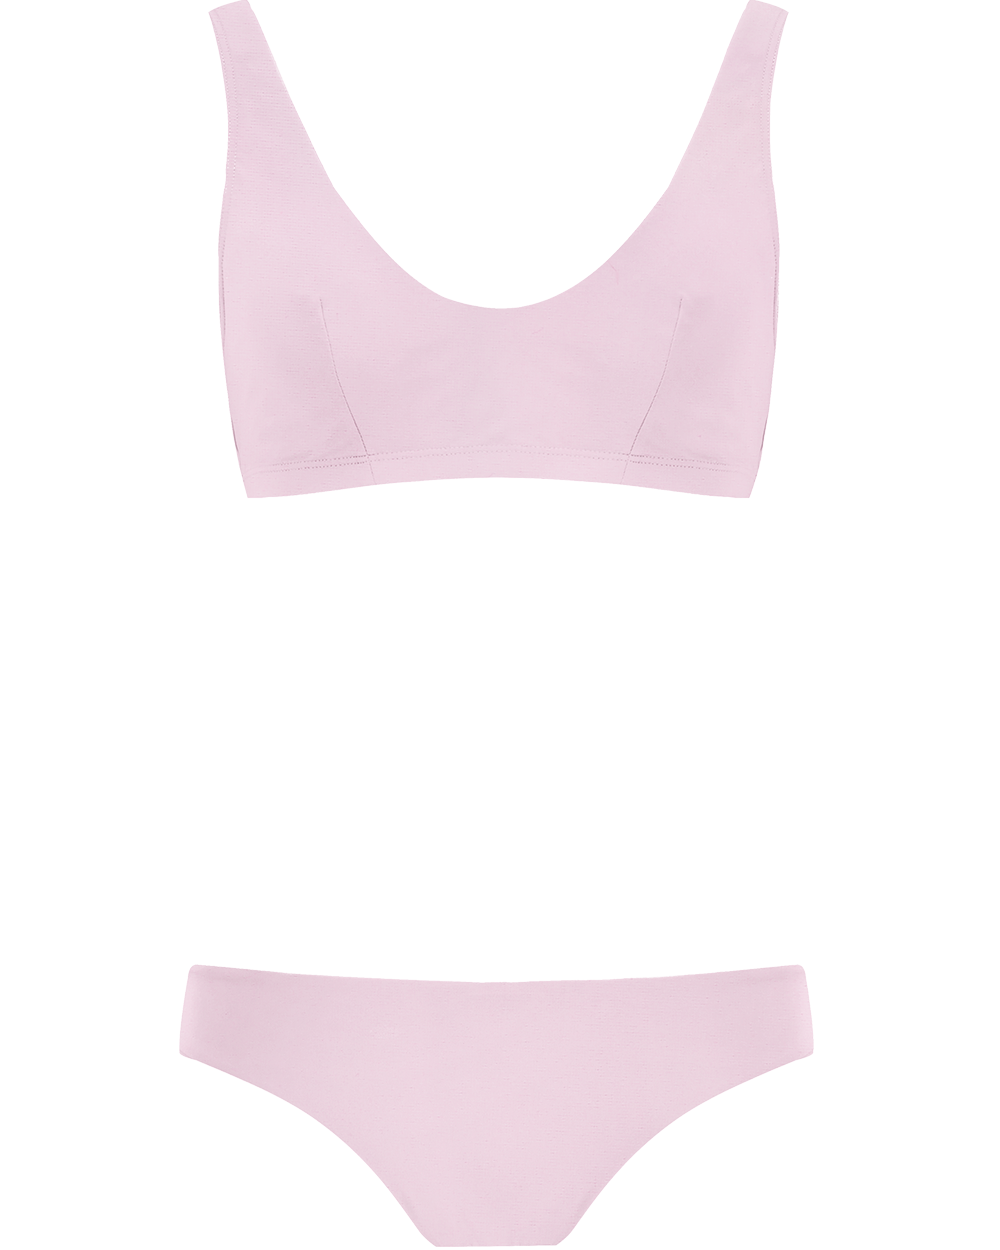 The Plunge Crop Set - Bonbon Pink